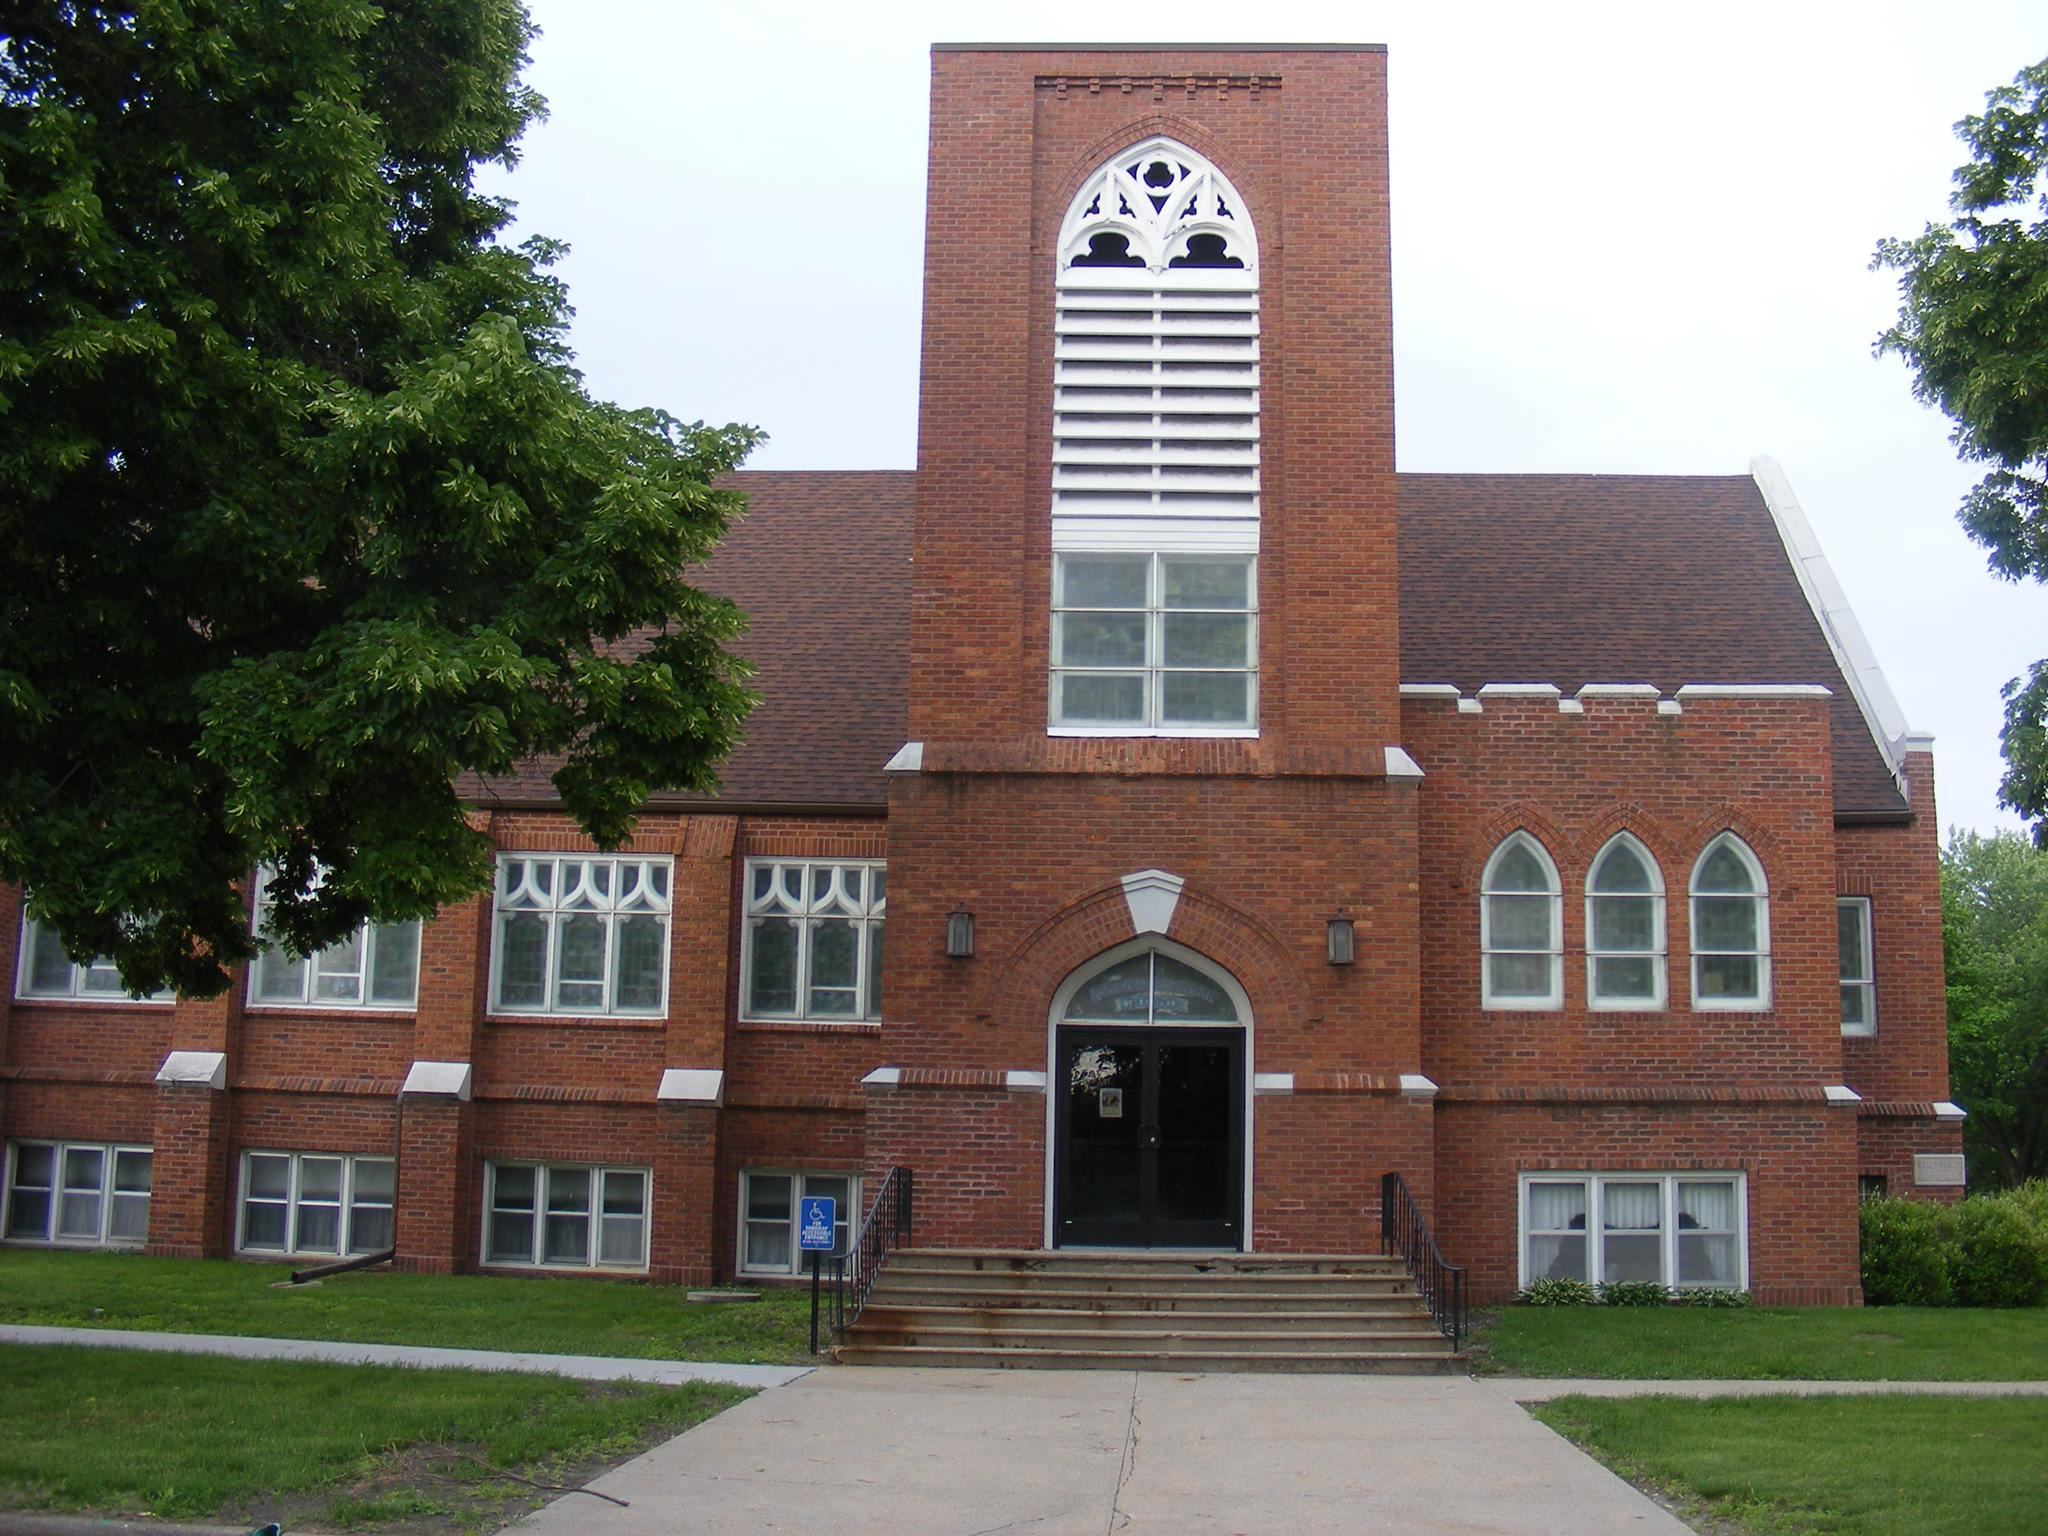 St. Paul's Lutheran & Presbyterian Church